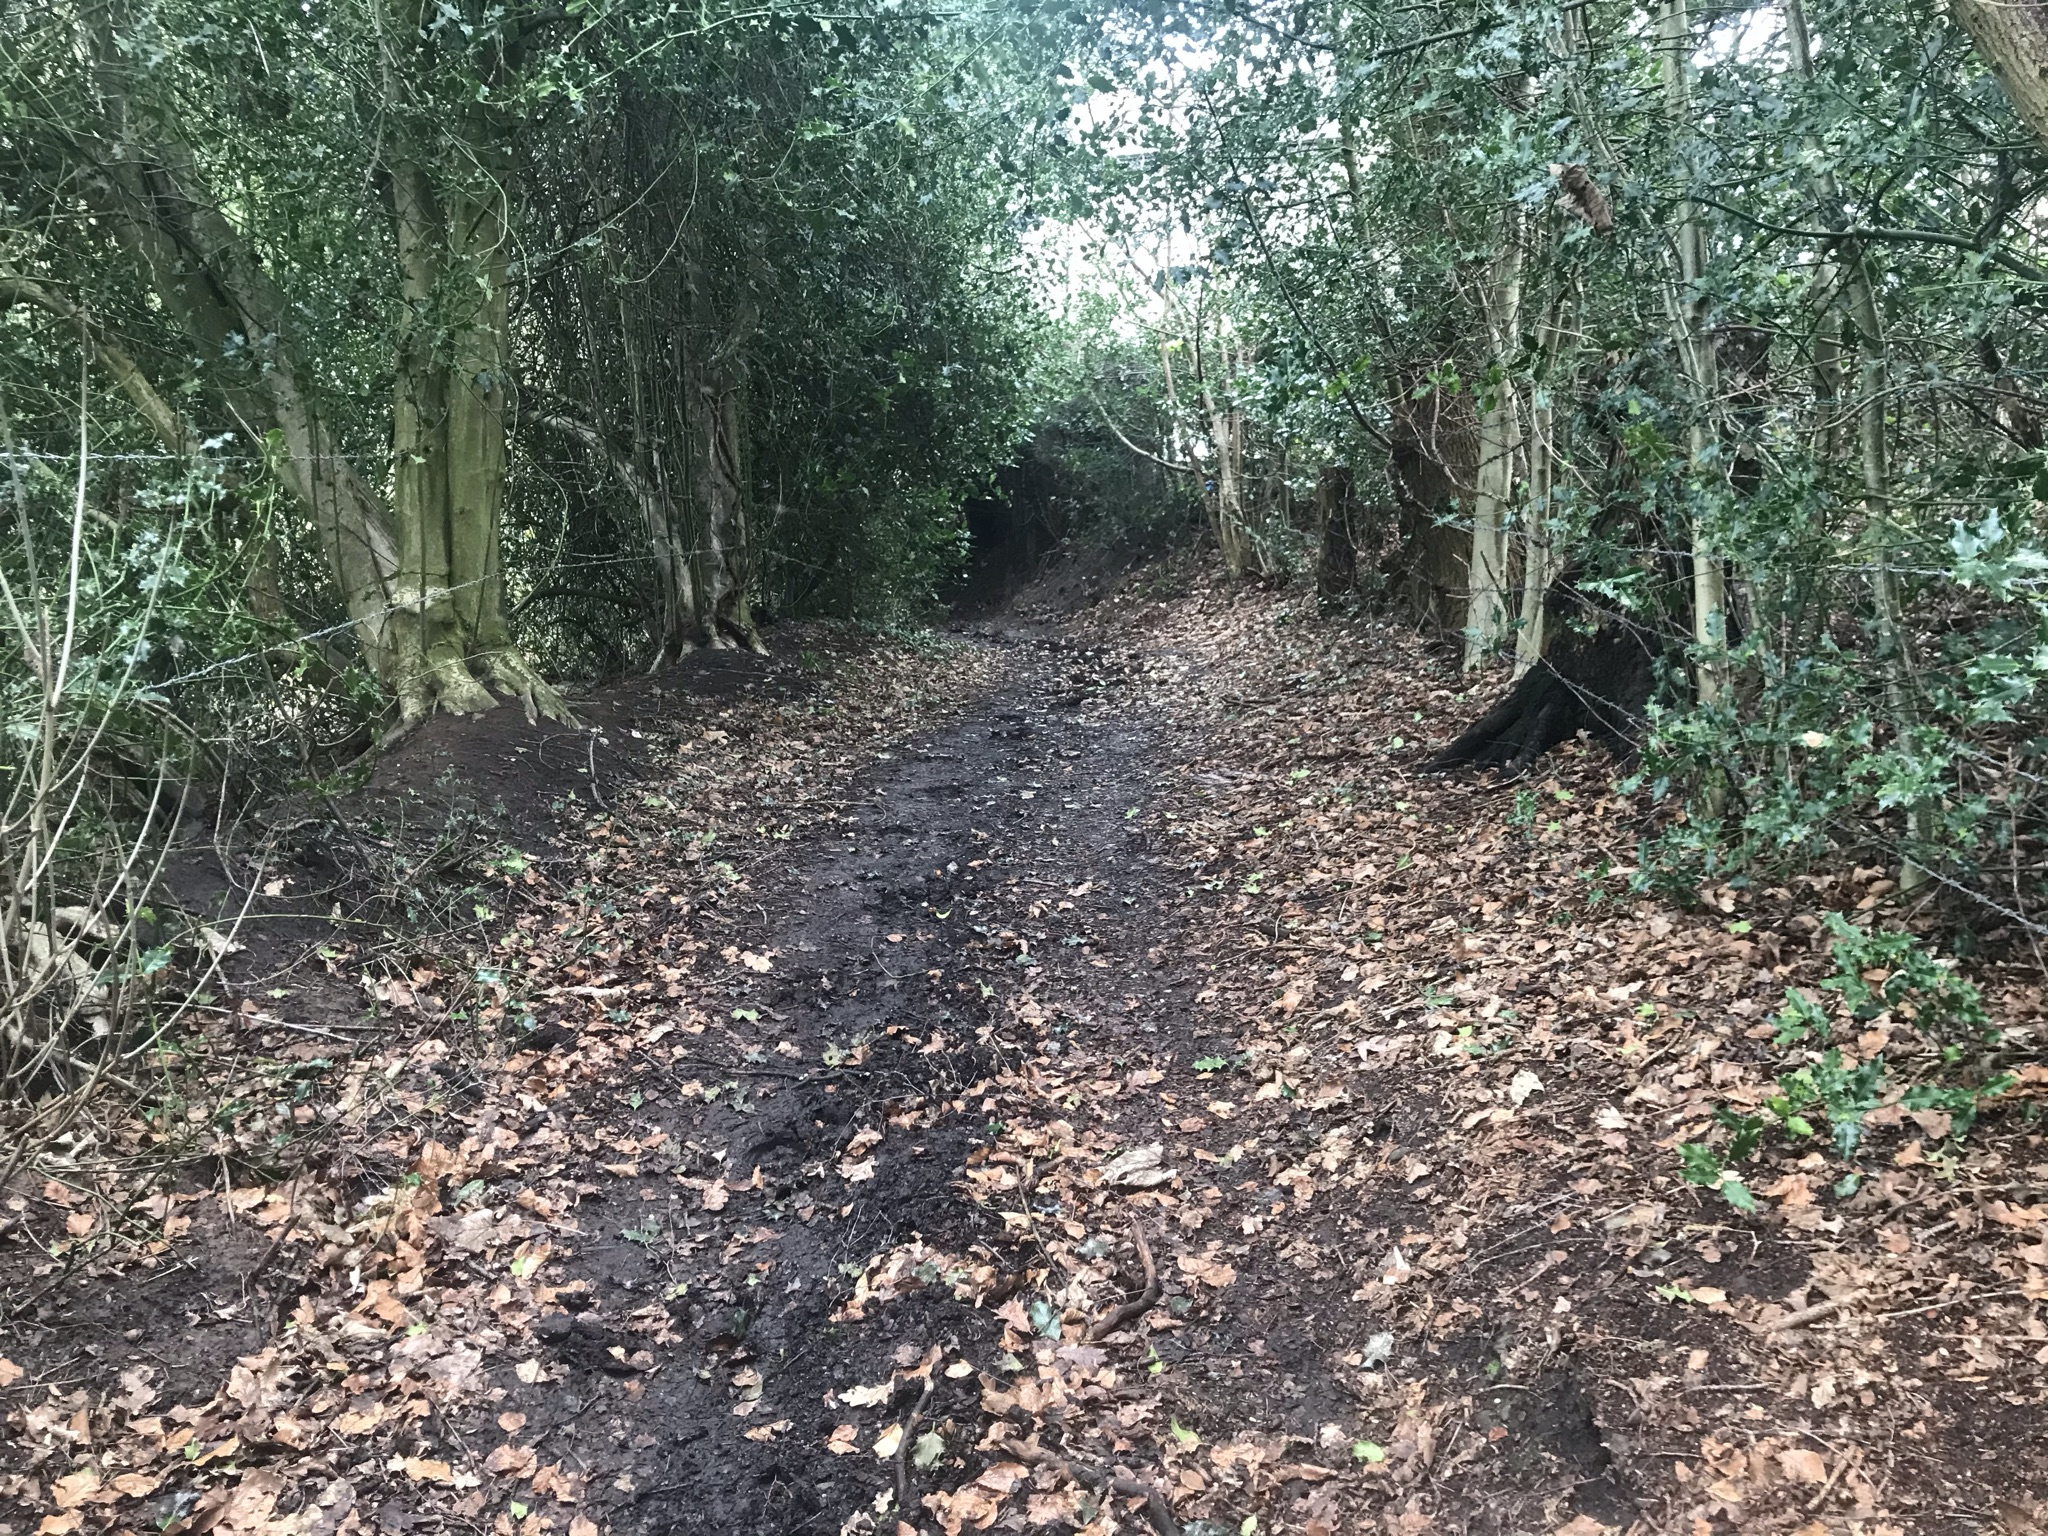 A muddy path with fallen leaves and high holly bushes leads down into dark overgrown hedges